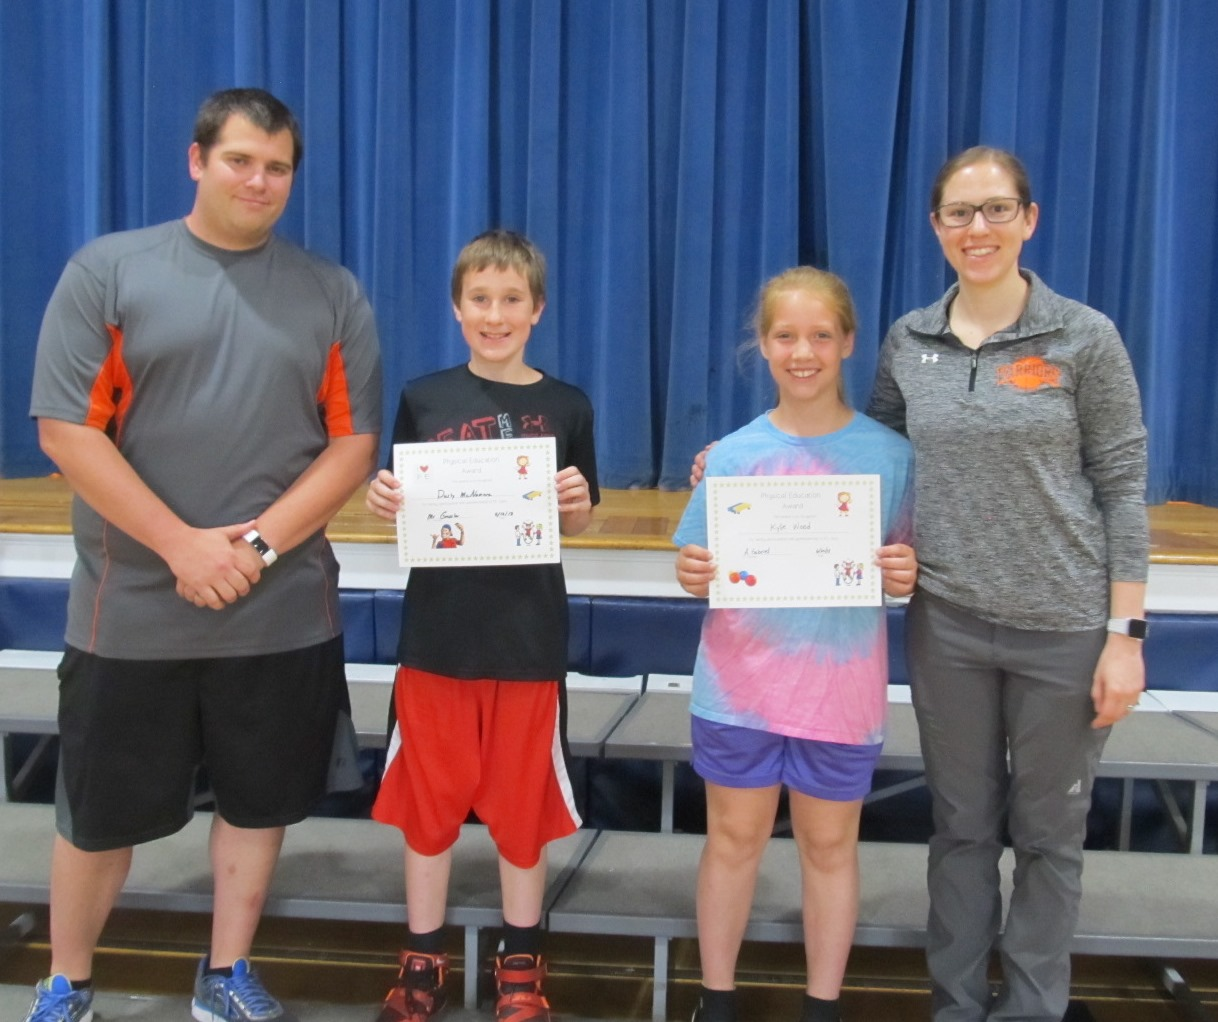 Physical Education Awards